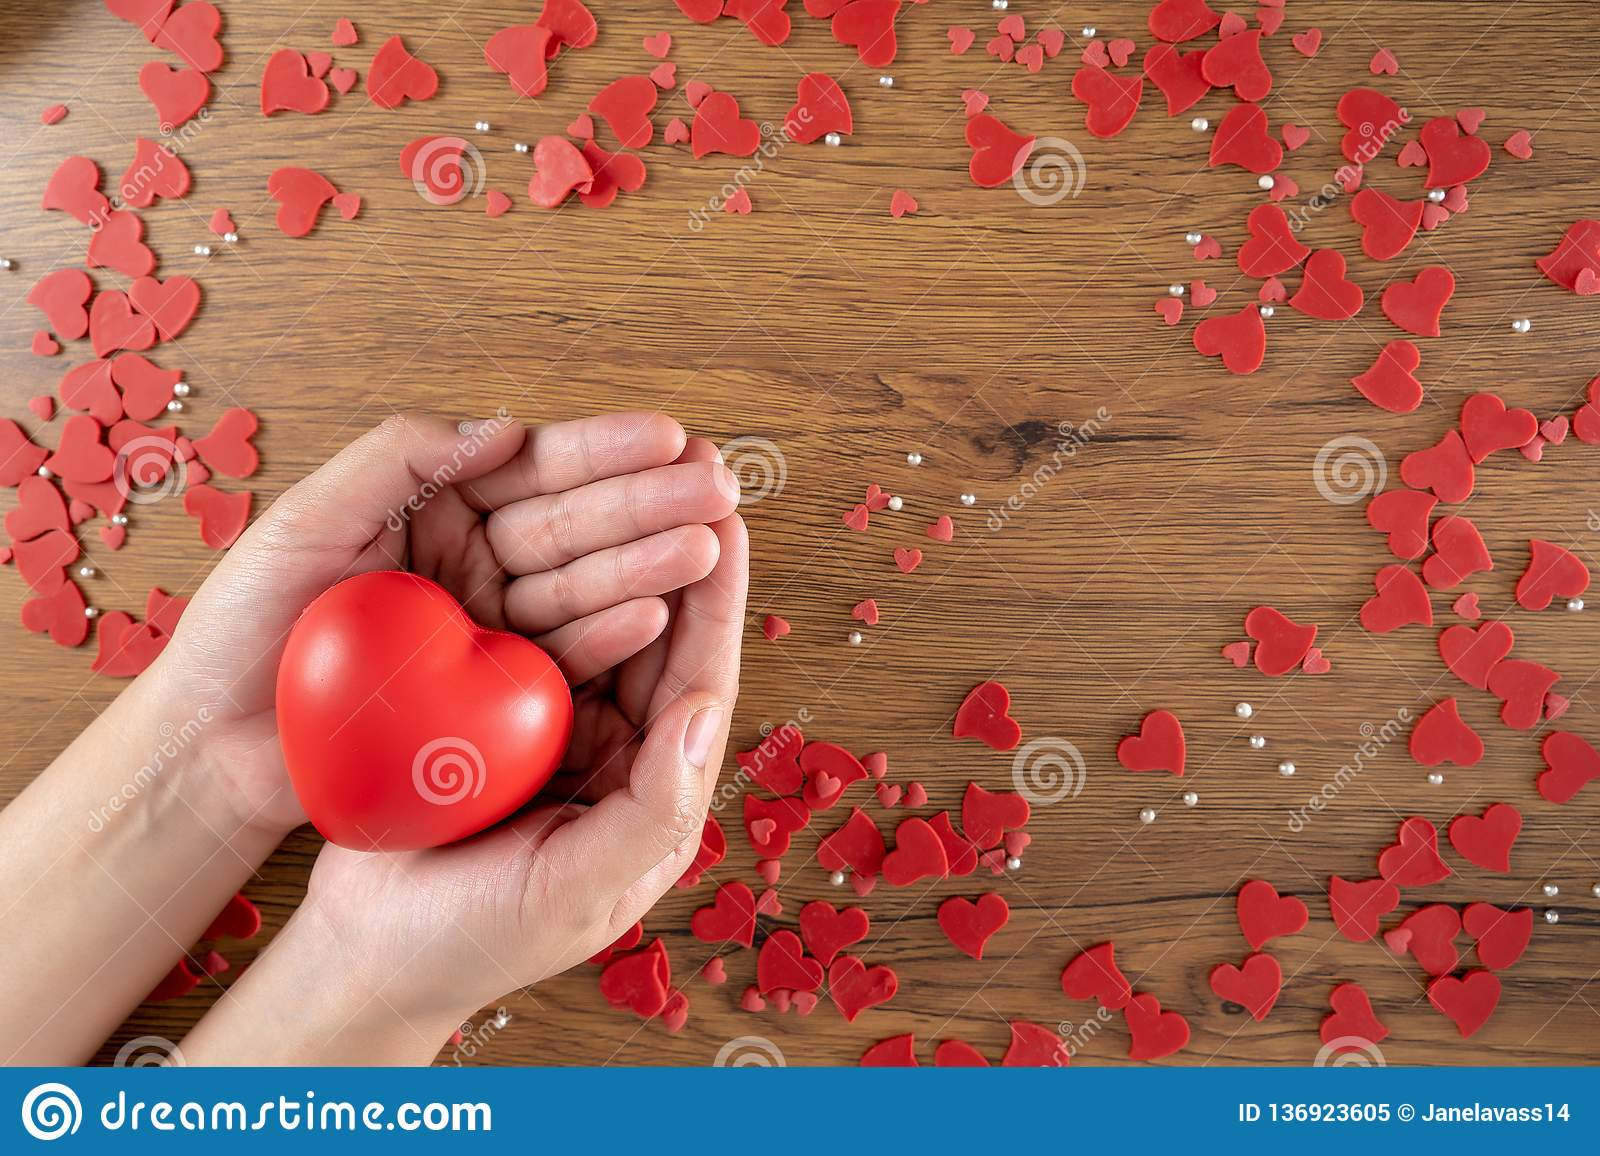 Valentines Day health care love holding red heart and world health day